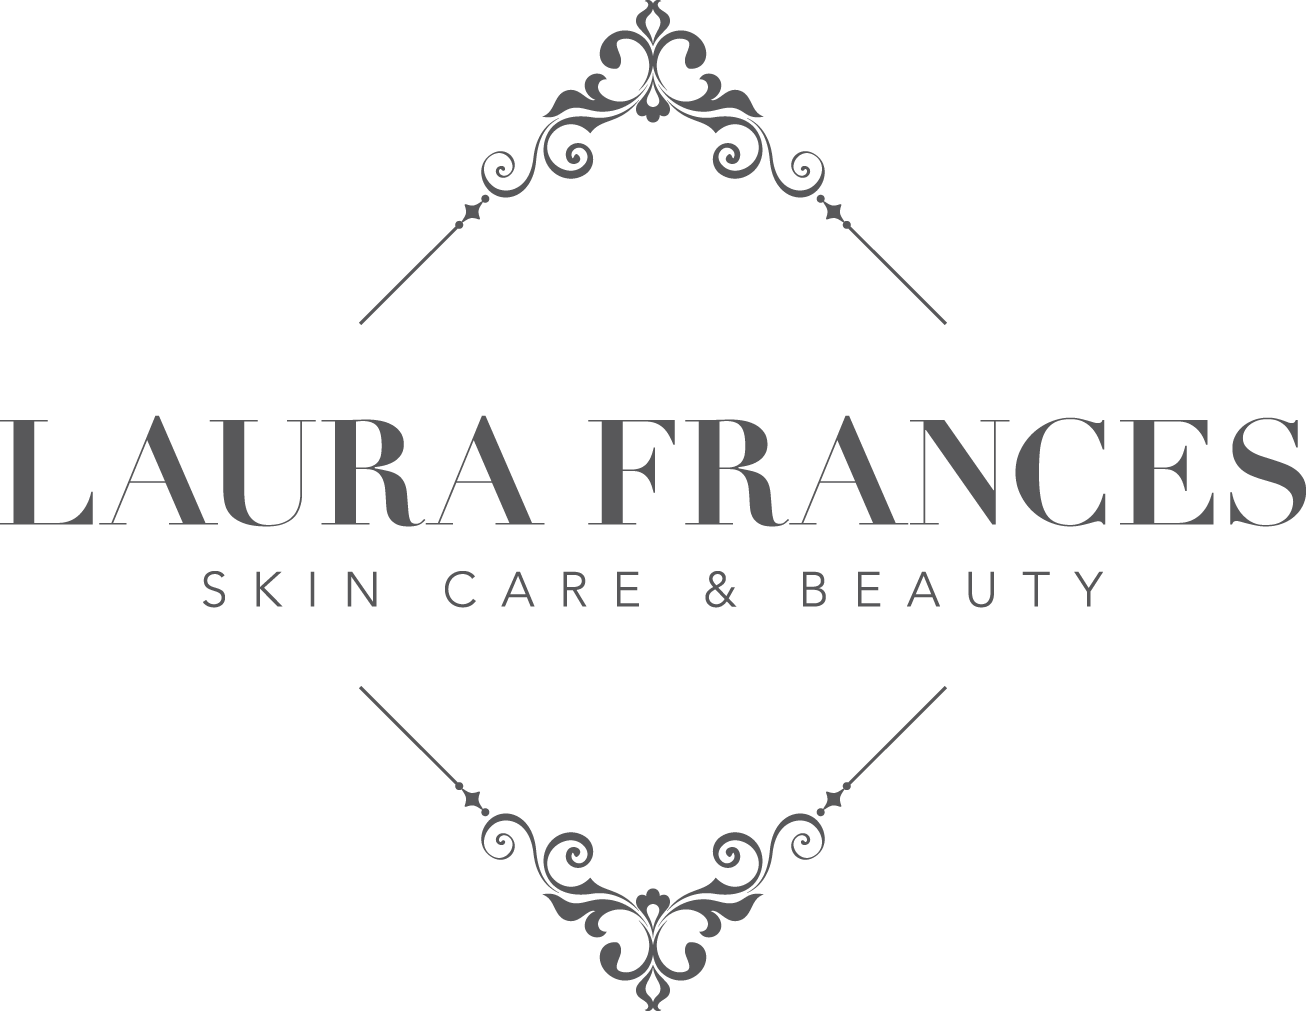 Laura Frances Skin Care & Beauty